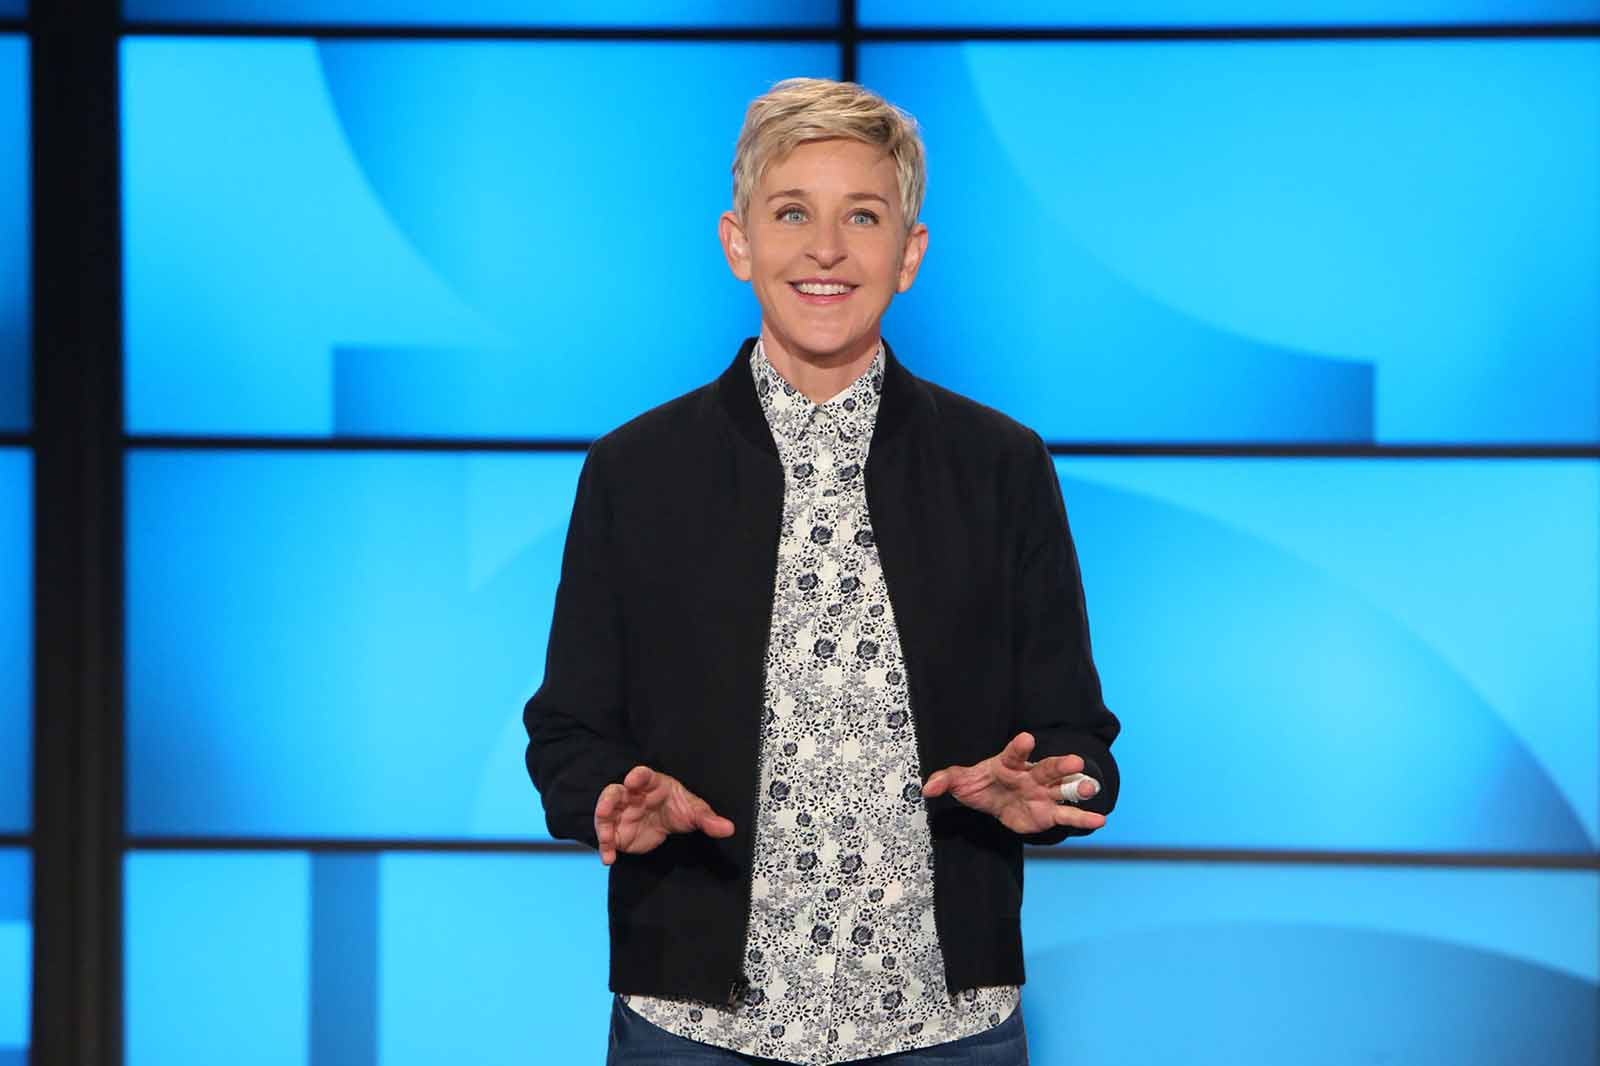 The producers of 'The Ellen DeGeneres Show' have been trying to play damage control, saying the show isn't cancelled. But what could cancel the show?